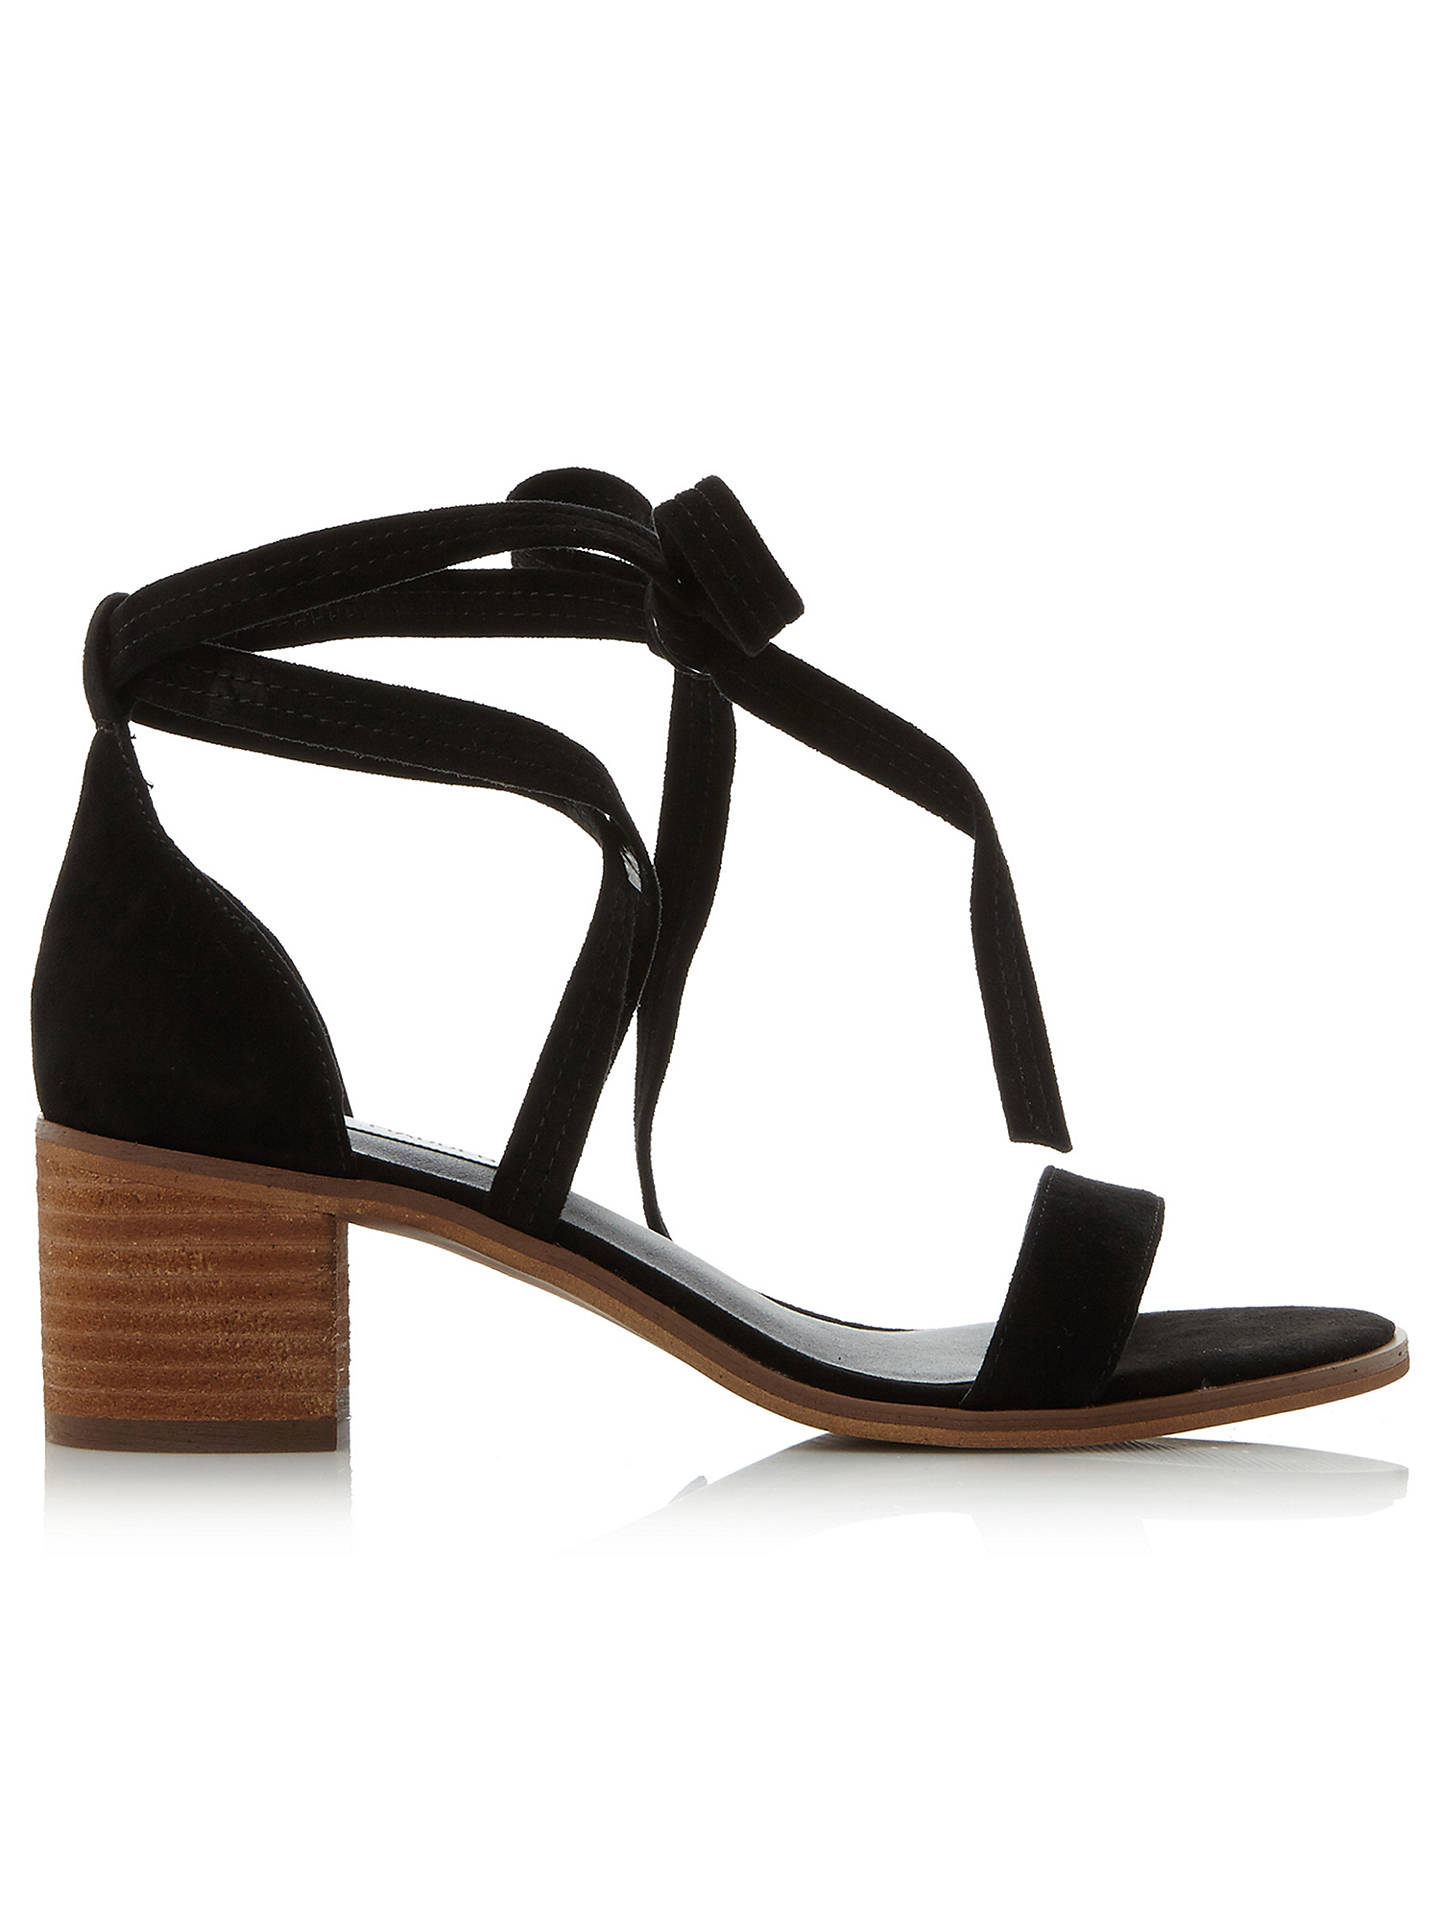 b5a4b3372a2 Steve Madden Rizza Tie Sandals at John Lewis   Partners